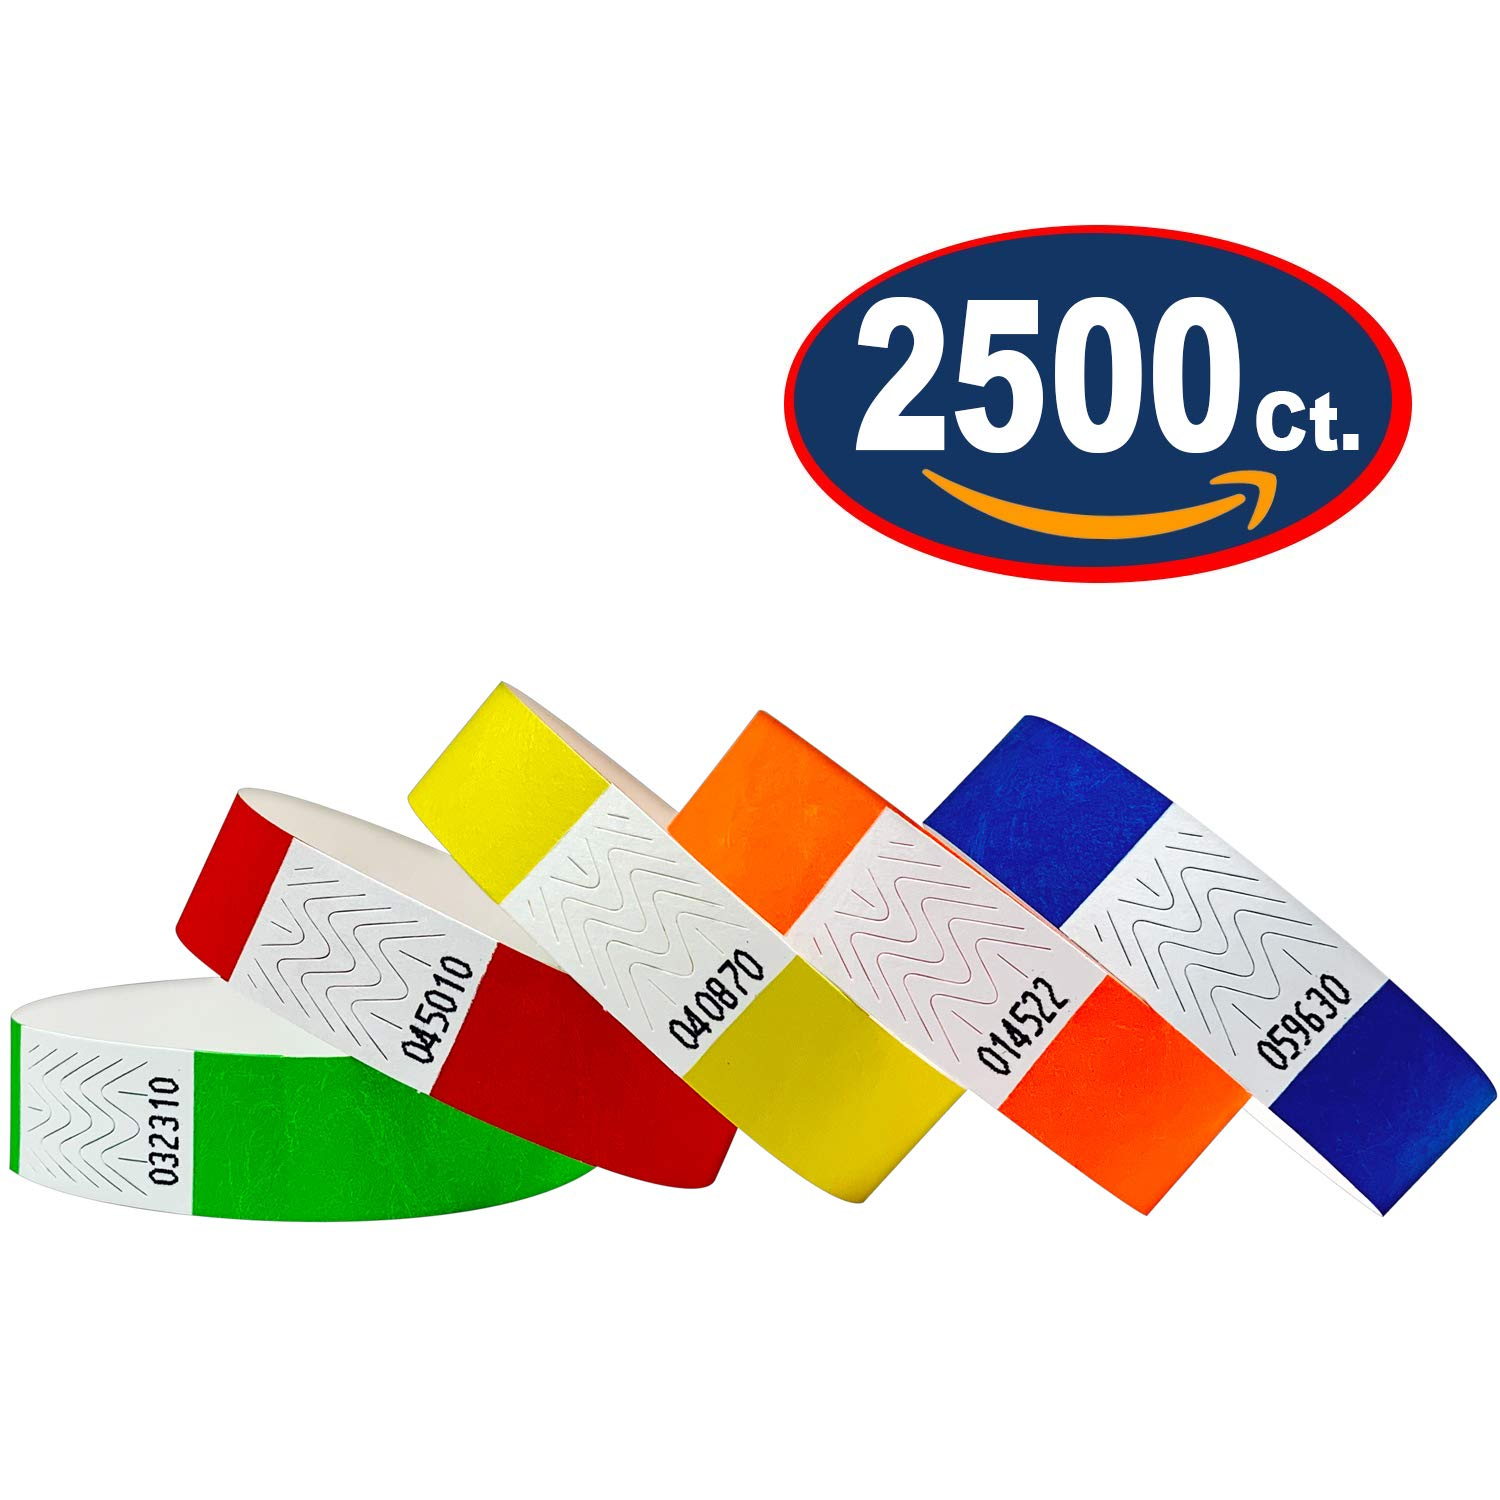 2500 Tyvek Wristbands 3/4'' - Variety Pack - Red, Orange, Yellow, Green, Blue - Paper Wristbands for Events by Eventitems